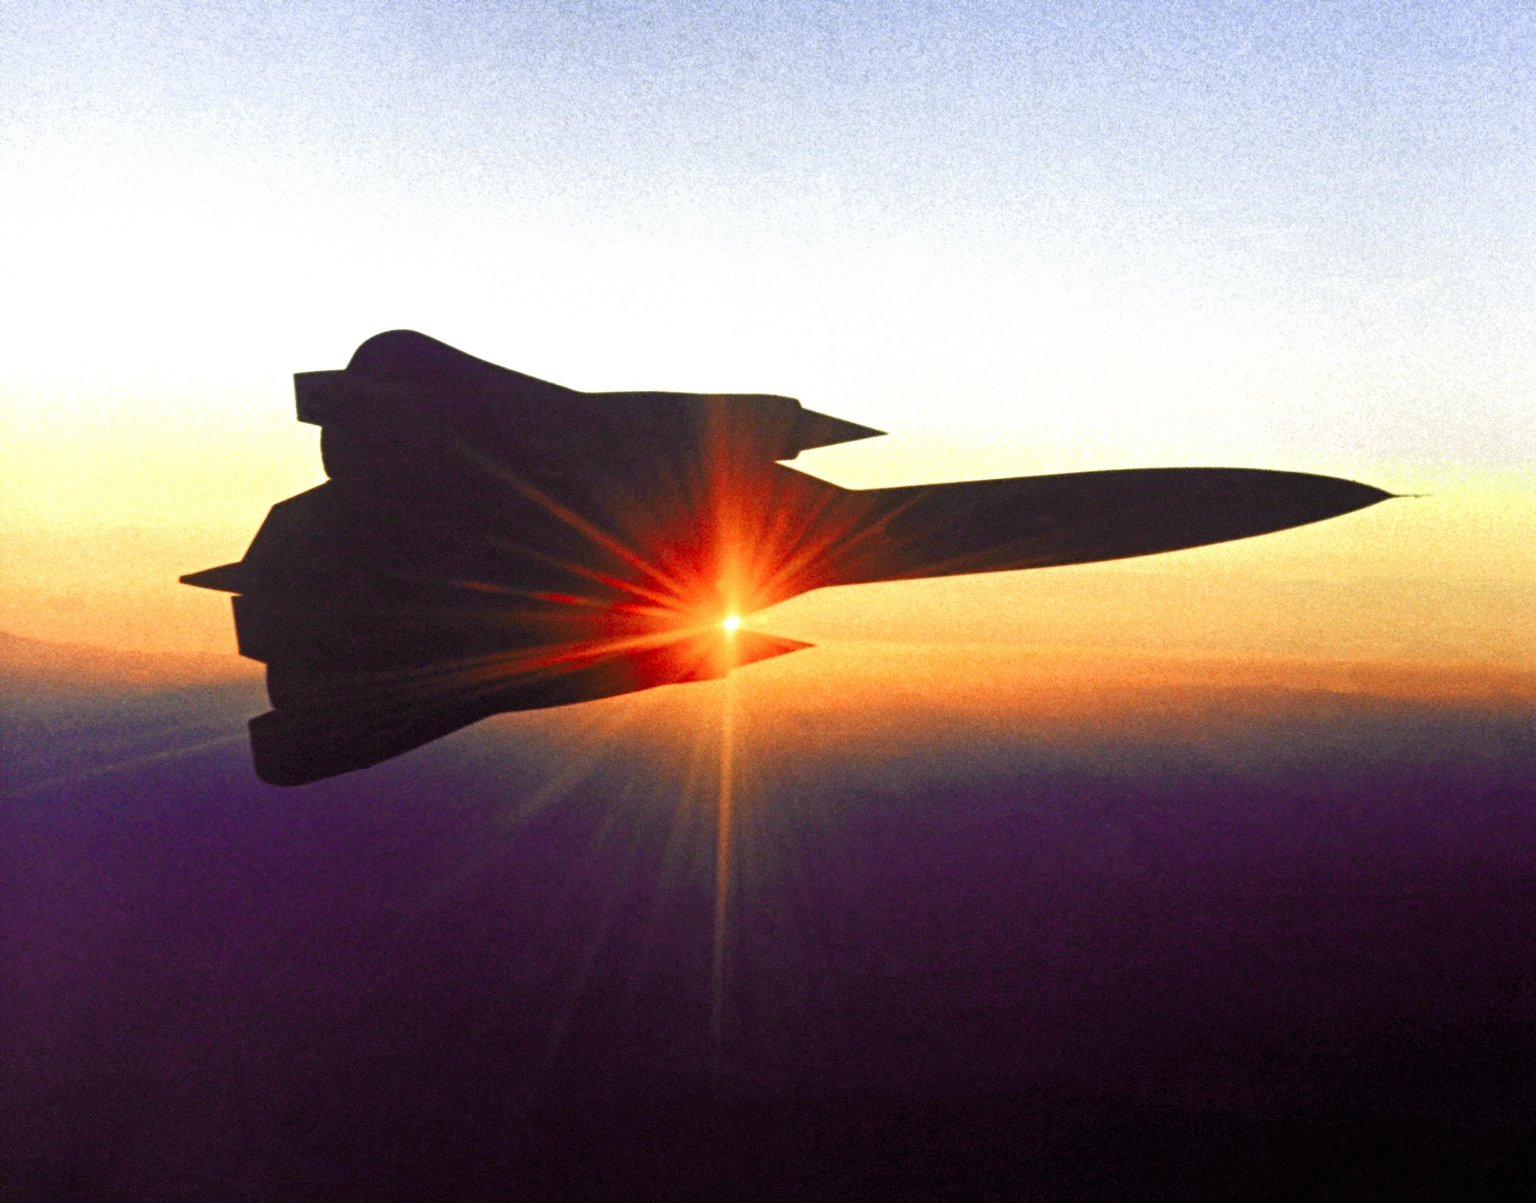 Missions at Mach 3